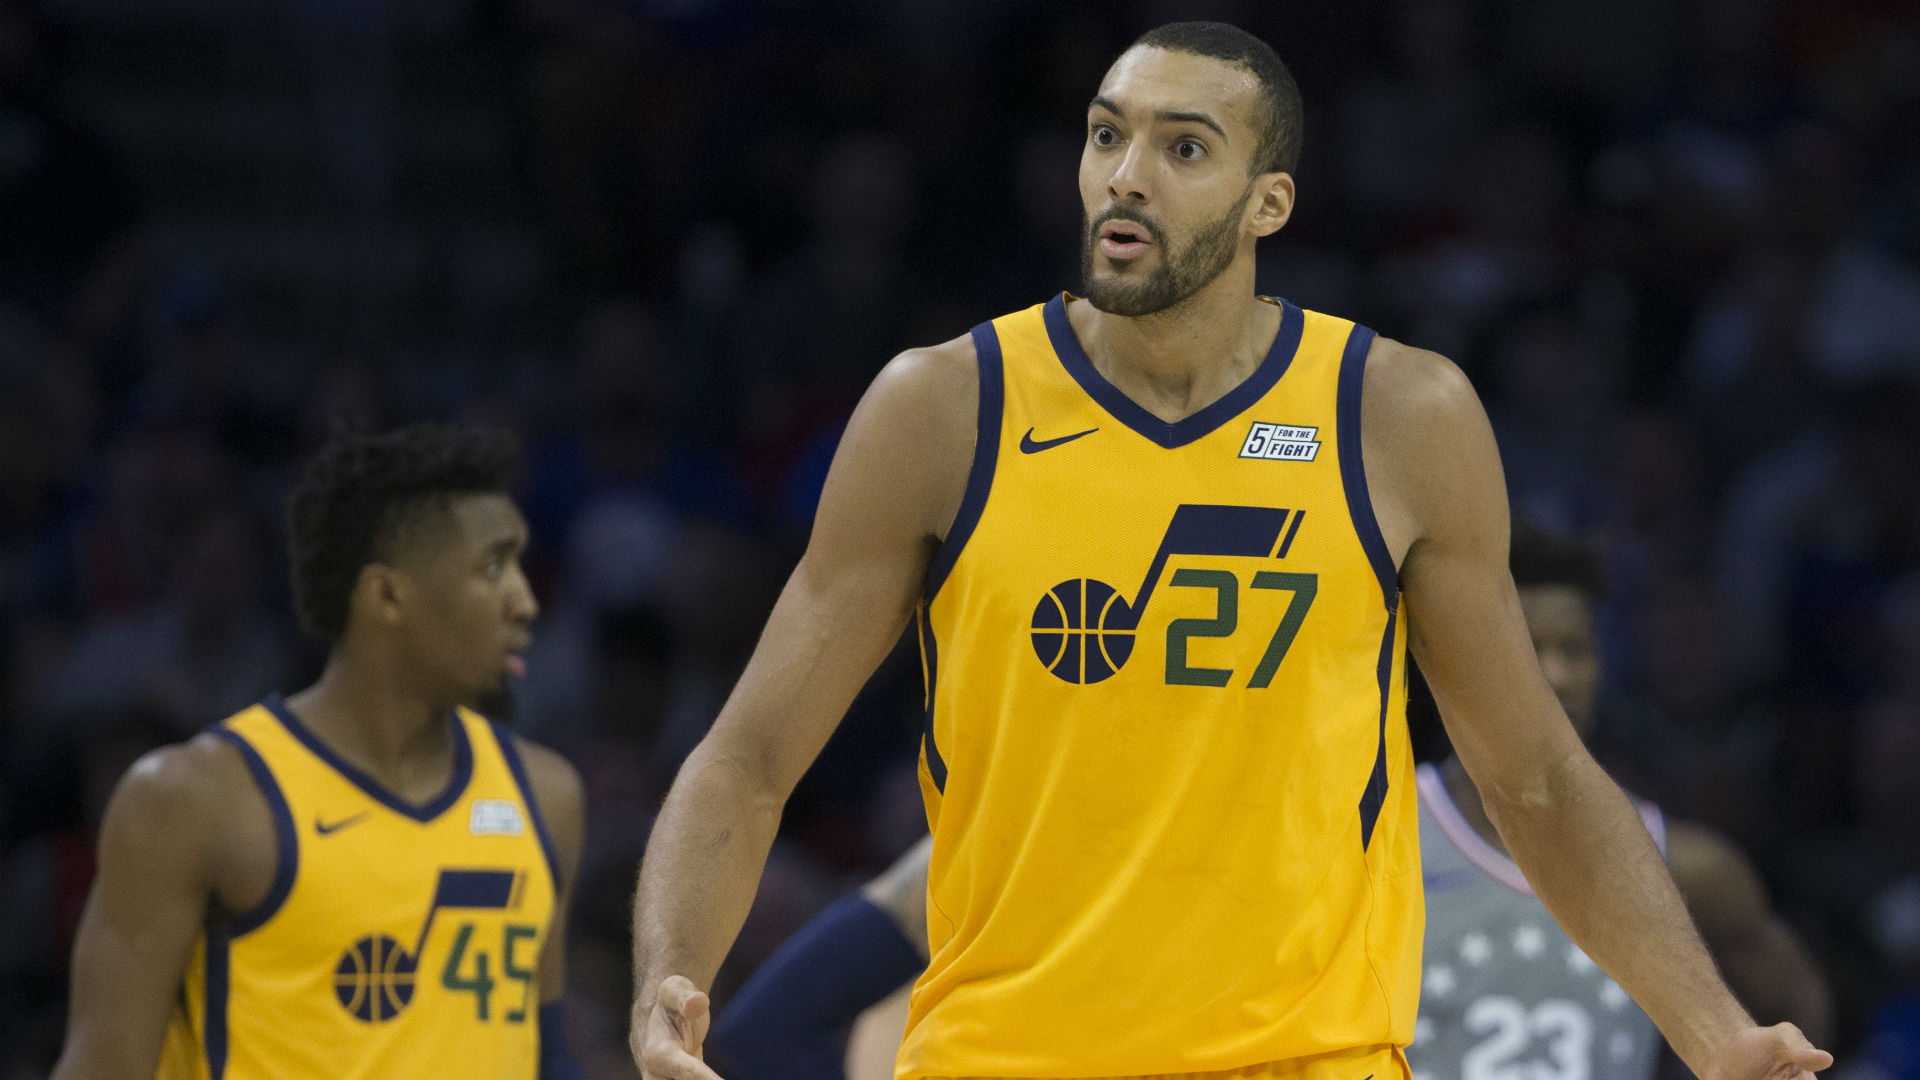 Nba All Star 2019 Rudy Gobert Rejected Jazz Center Is Easily Most Glaring Snub Sporting News